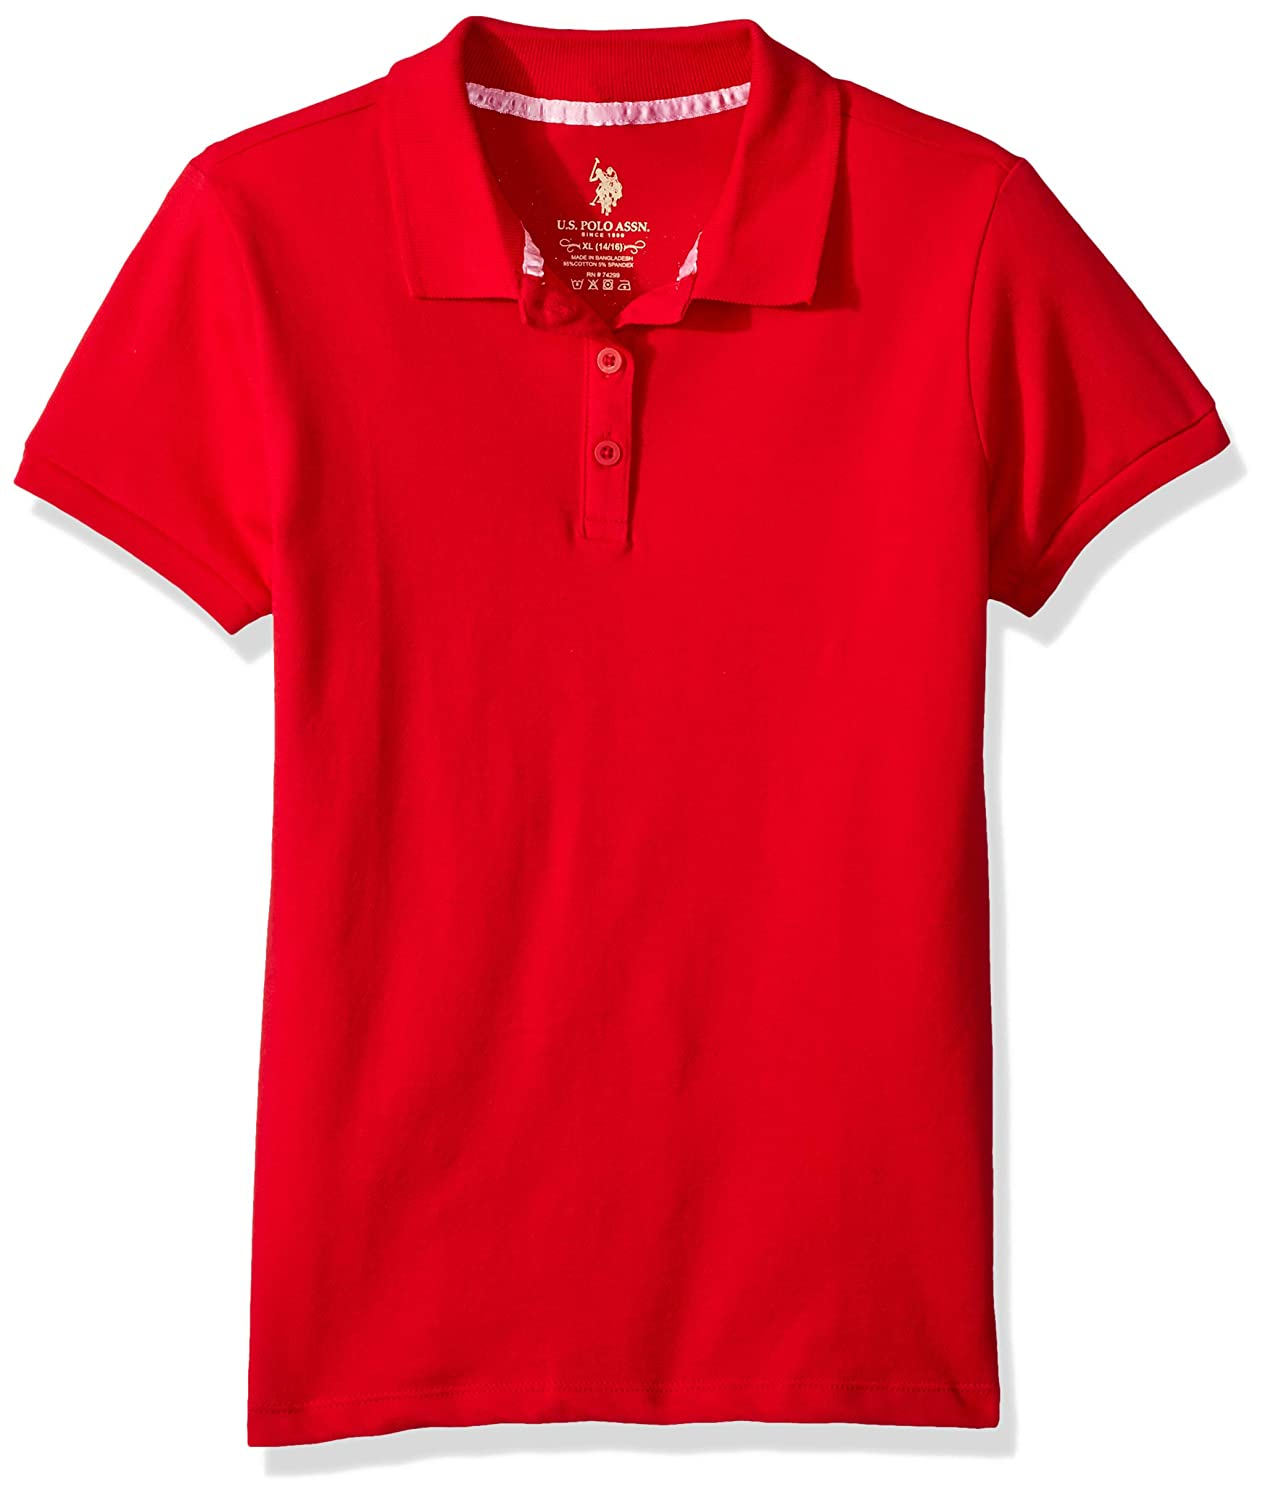 U.S. Polo Assn. Girls' Short Sleeve Stretch Pique Shirt, 7524